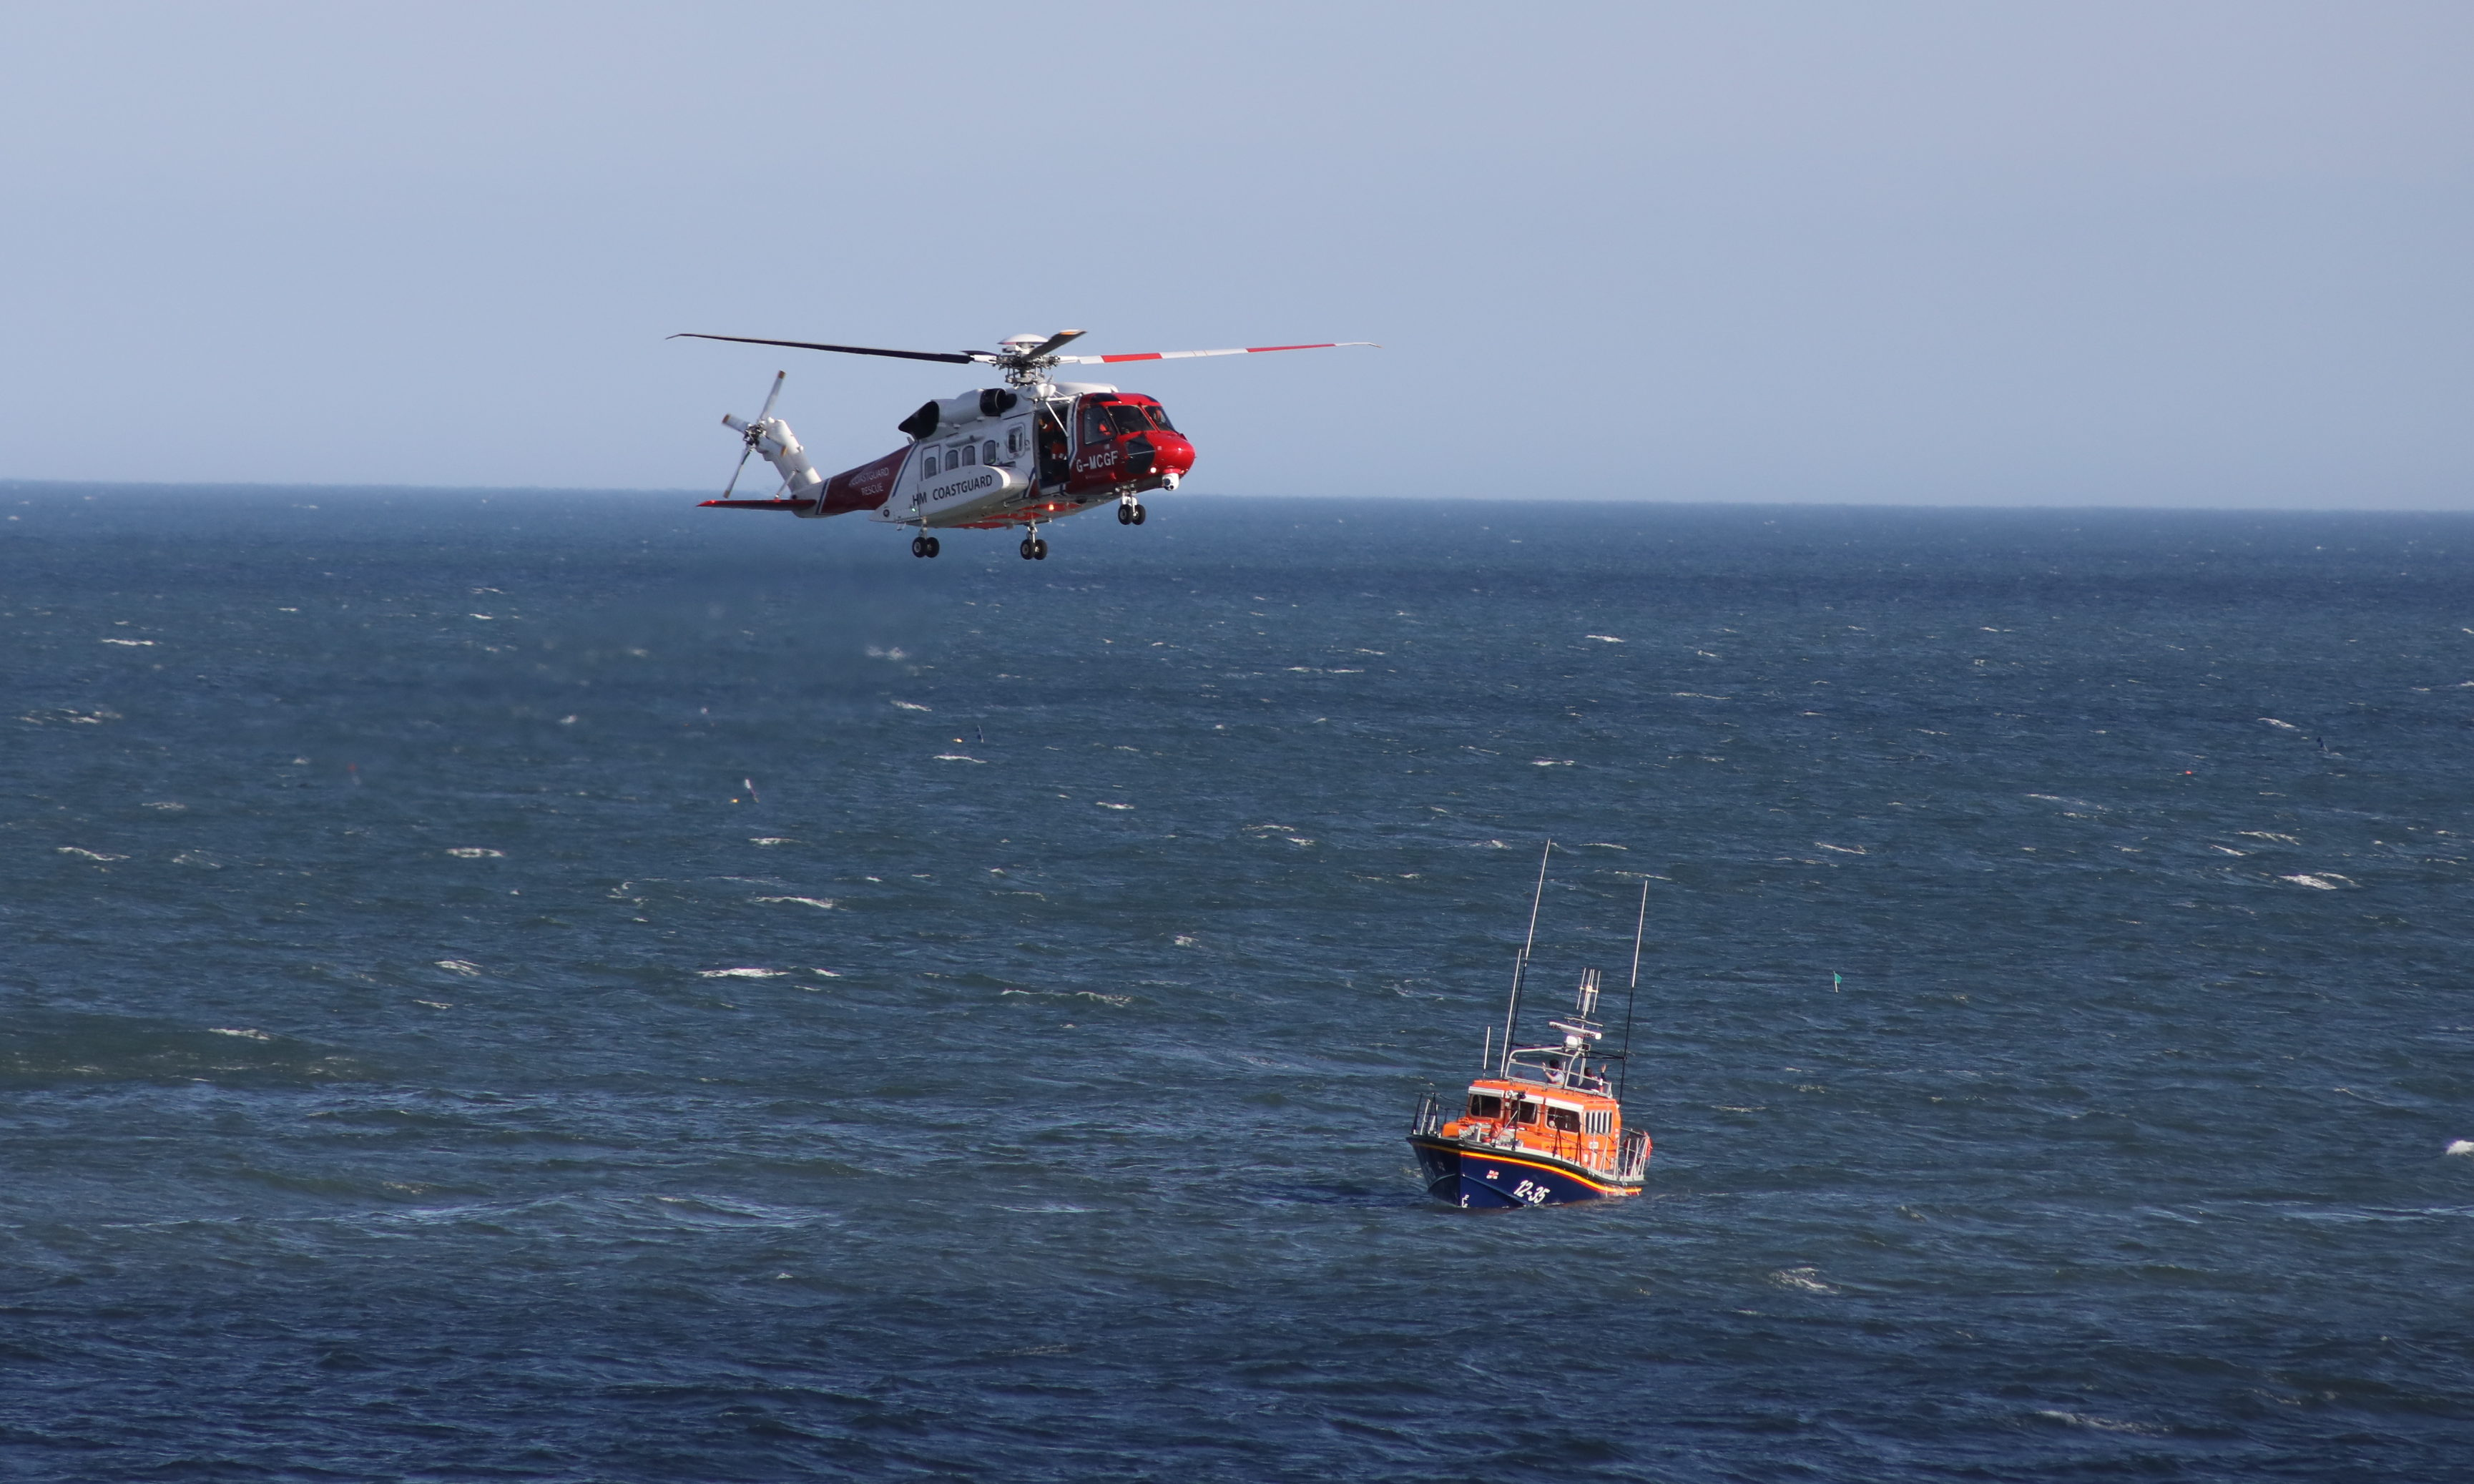 The UK Coastguard helicopter at Arbroath Cliffs.